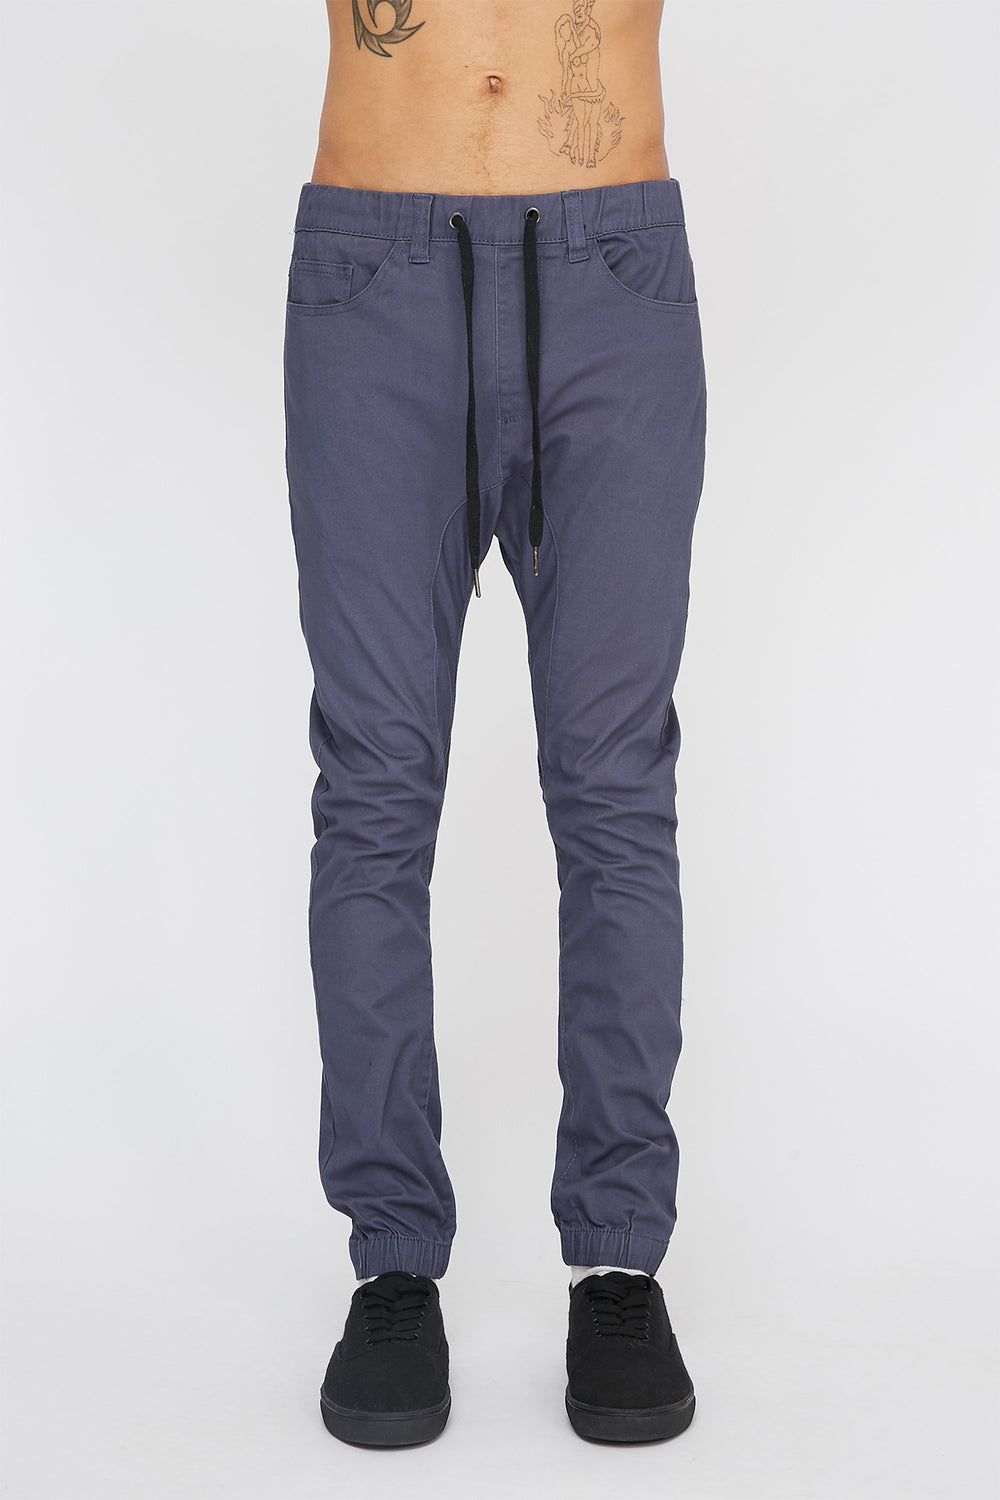 Jogger À 5 Poches Zoo York Homme Argent